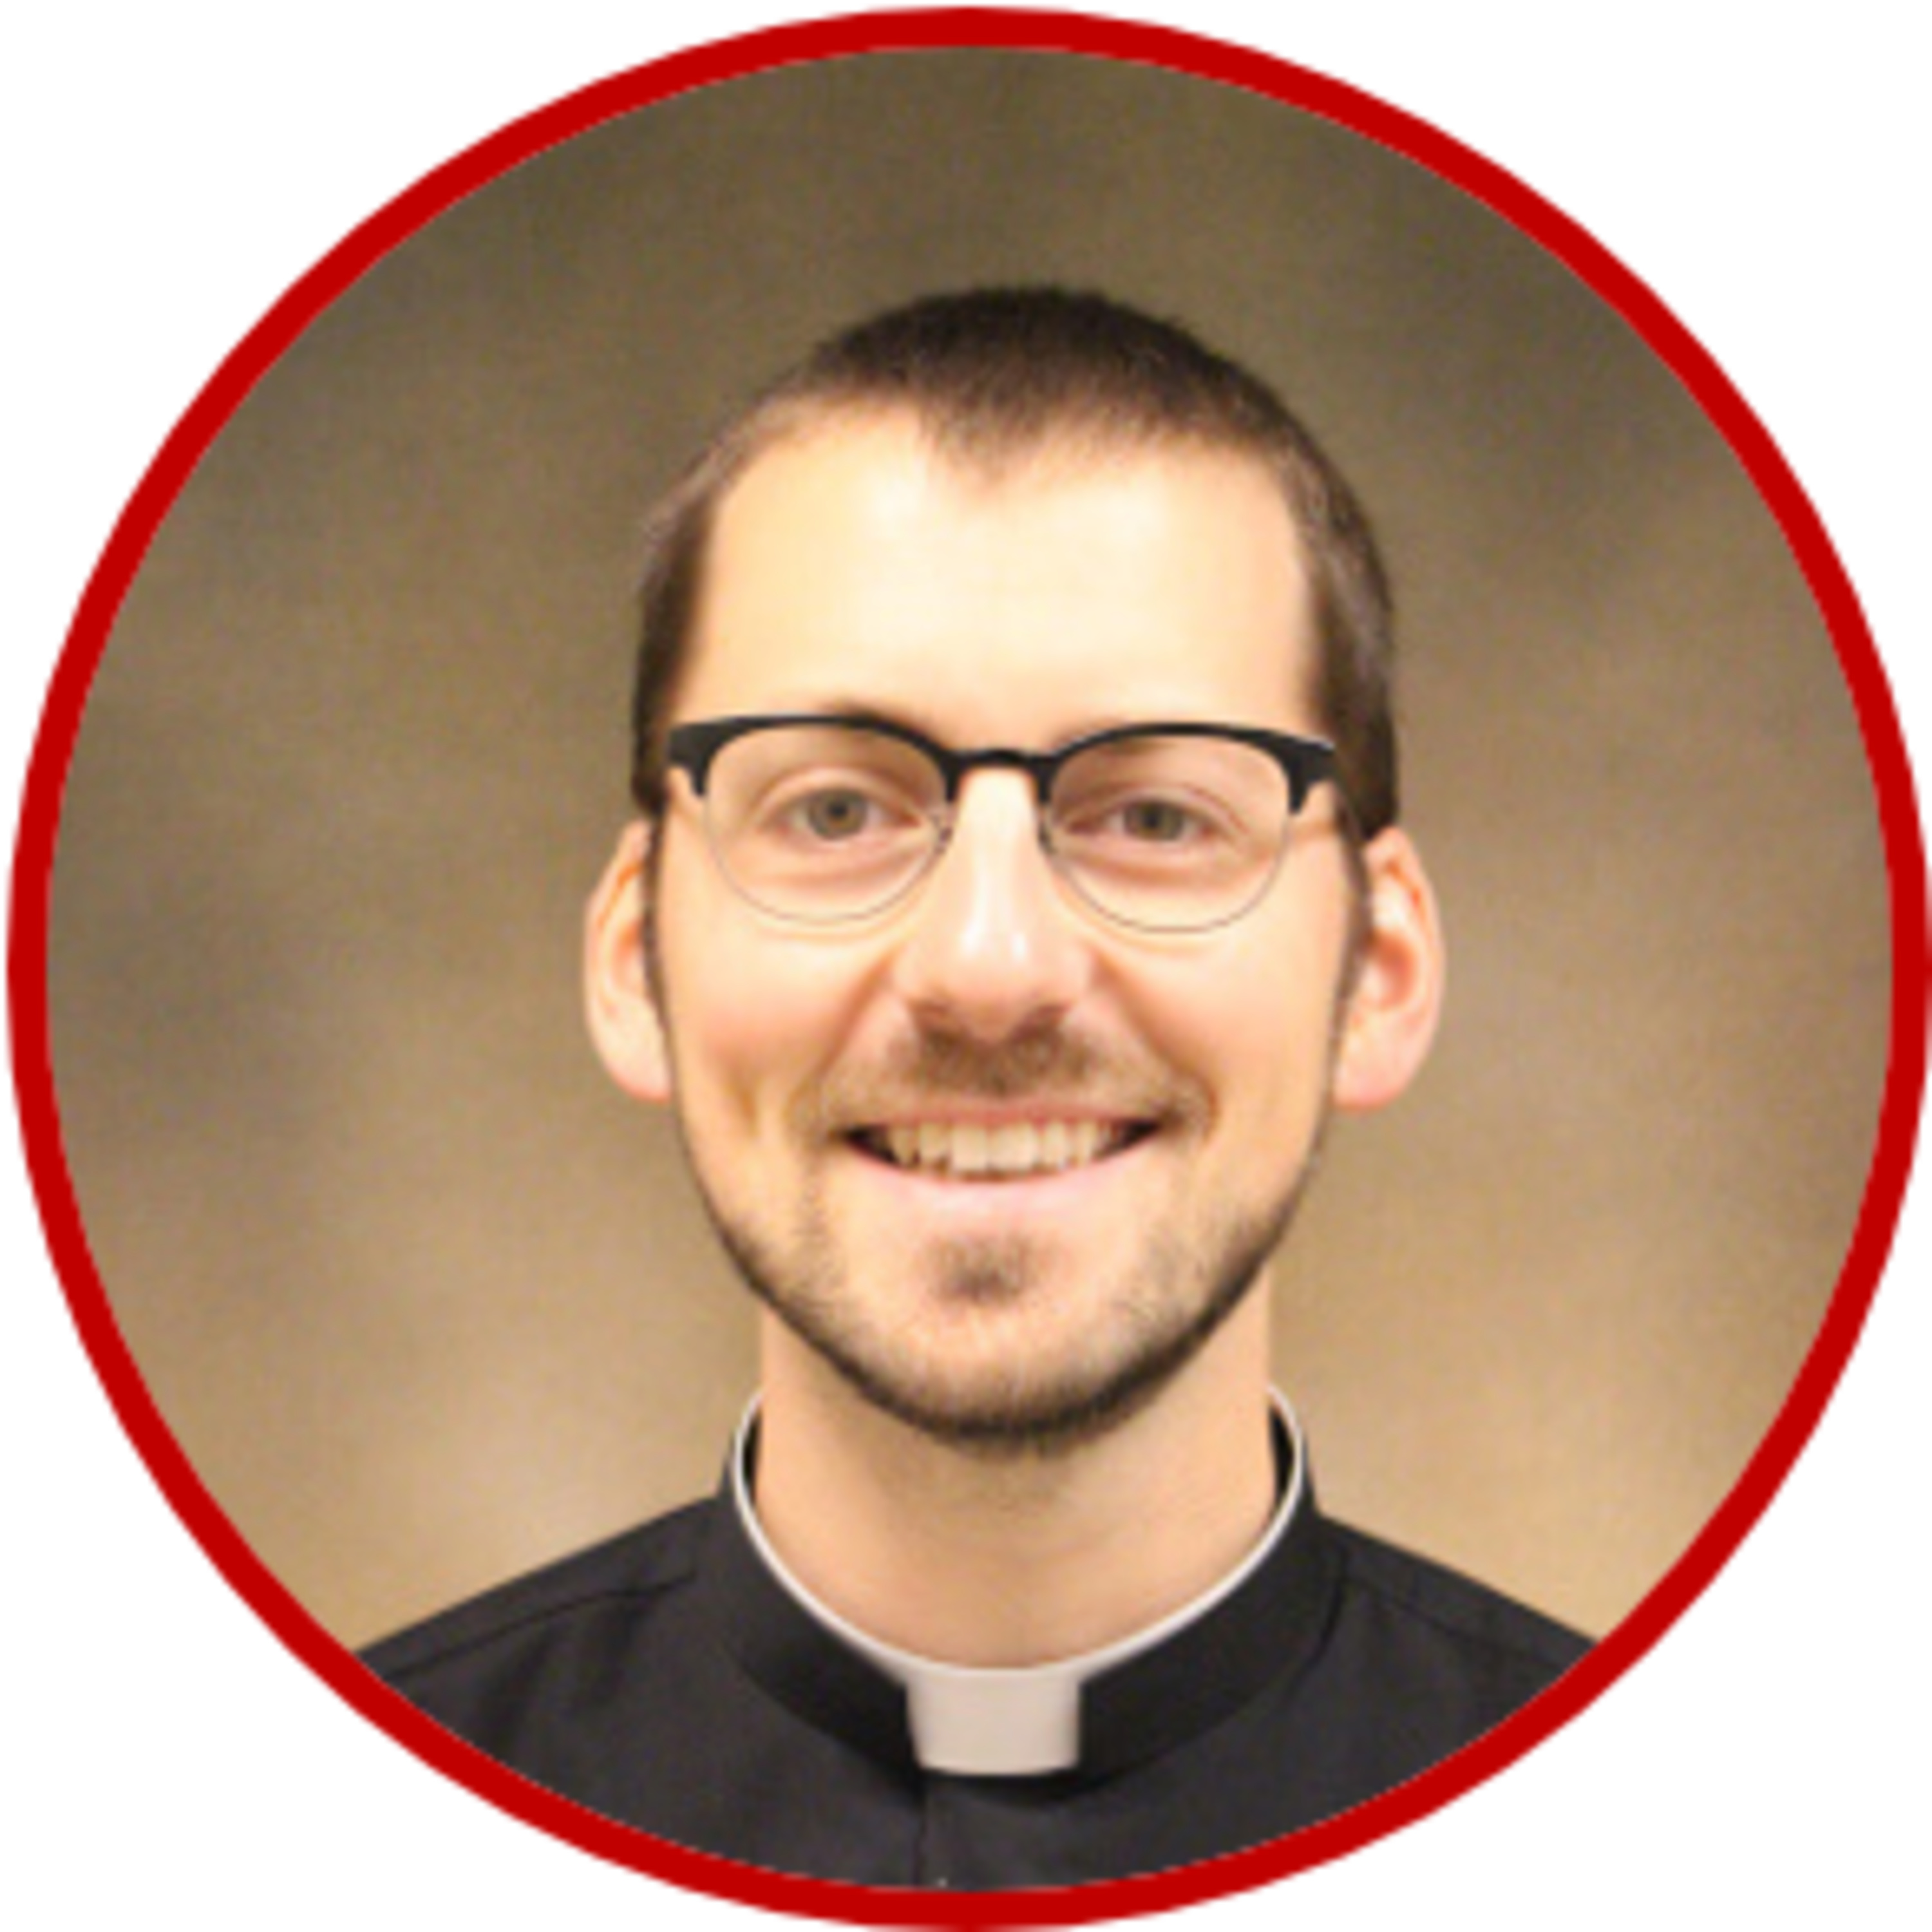 14th Sunday in Ordinary Time: Fr. Christian DeCarlo